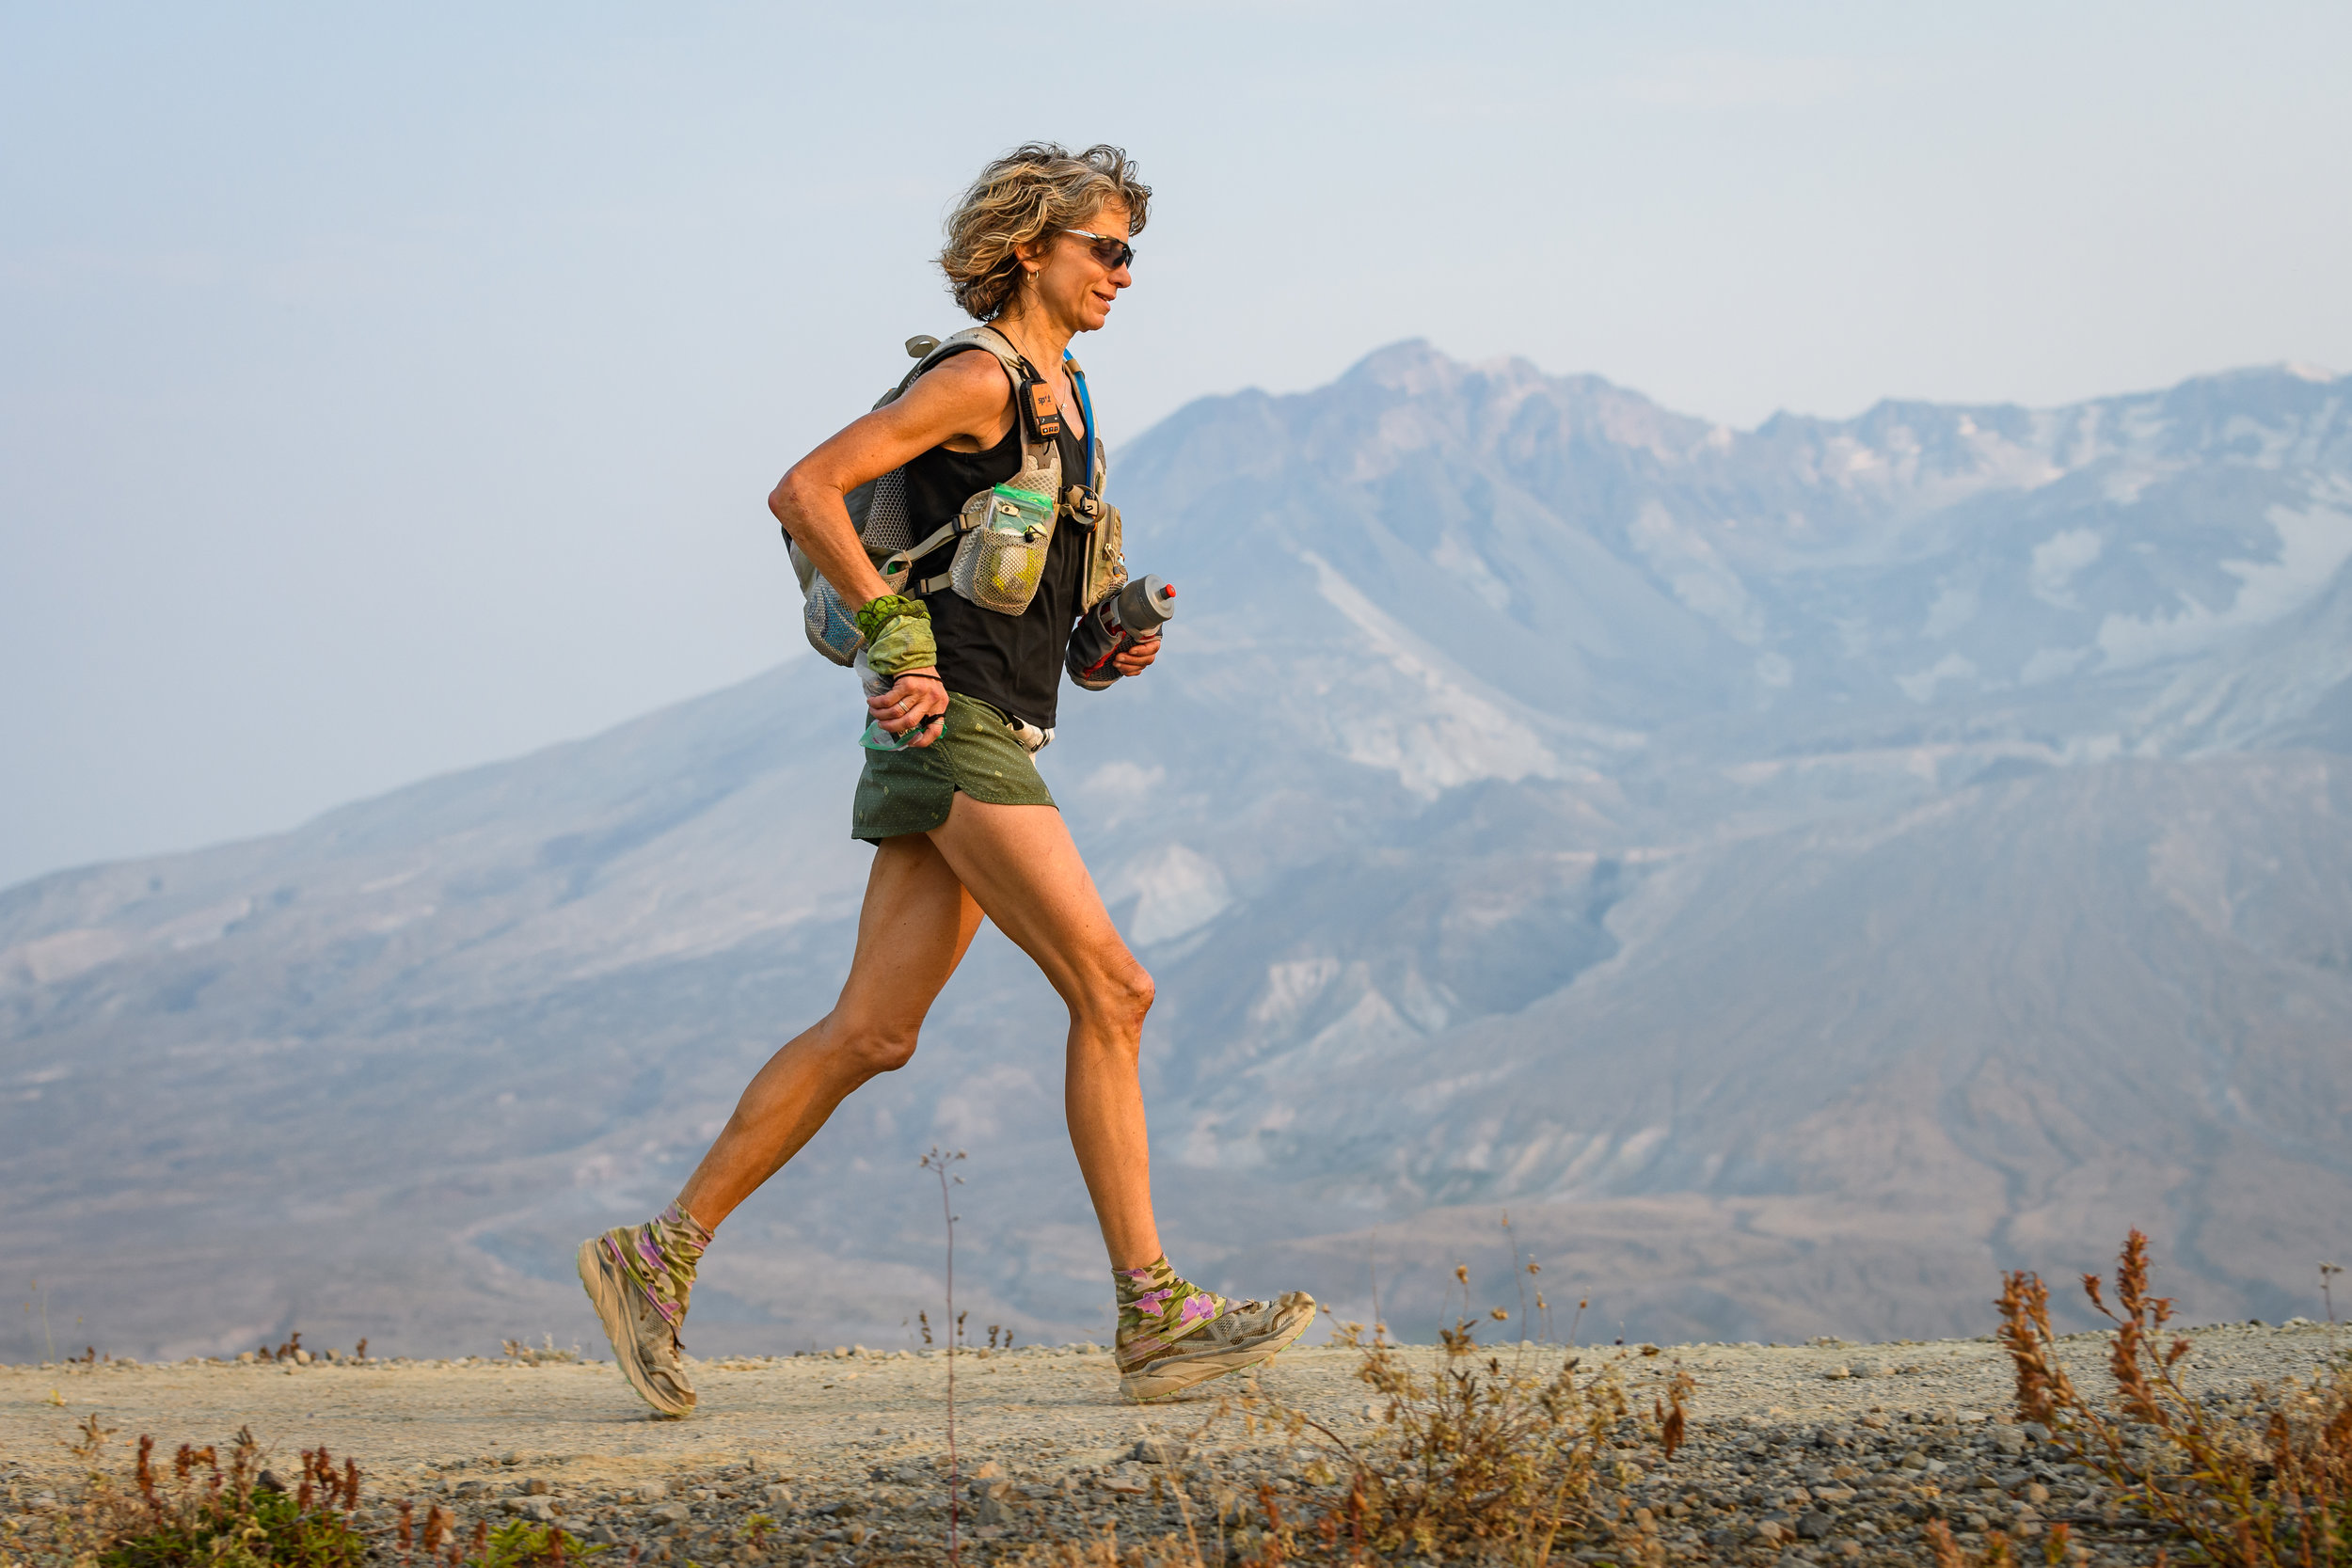 Susan Donnelly uses mental toughness to run the Bigfoot 200-mile ultramarathon